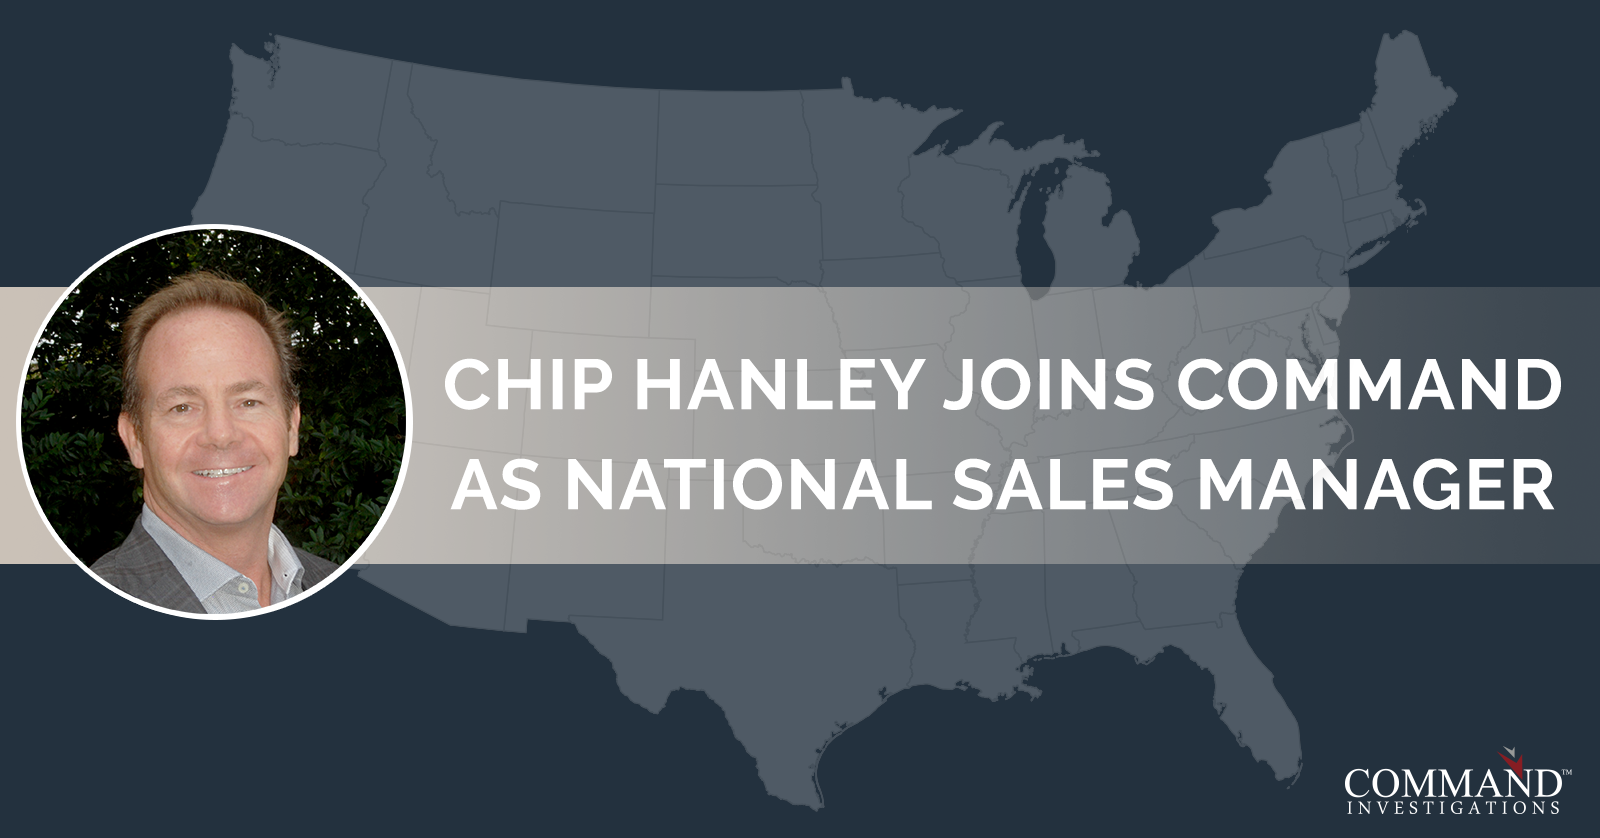 Chip Hanley joins Command Investigations as National Sales Manager